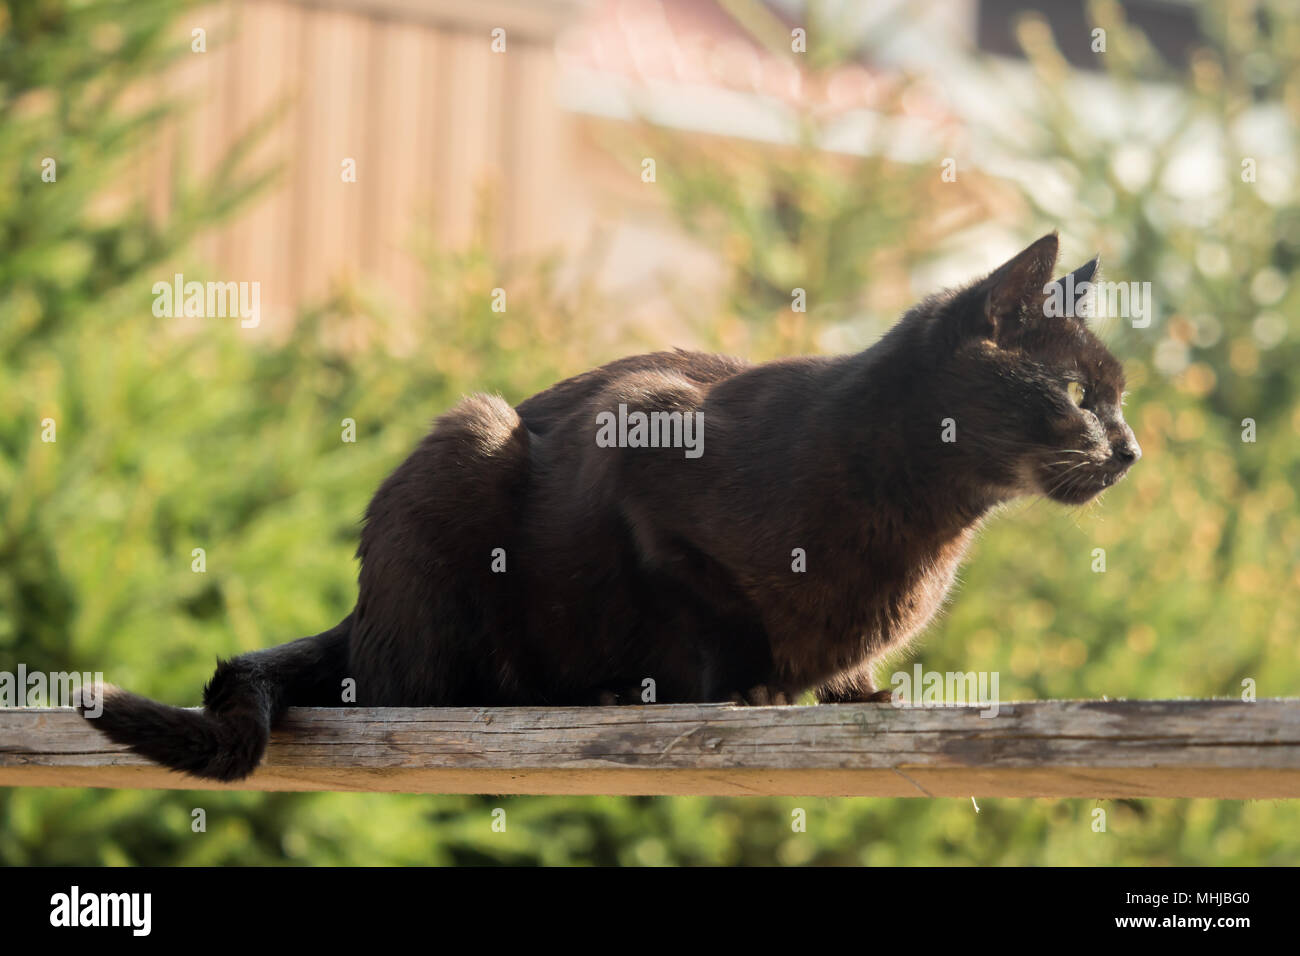 A dark brown cat sits on a wooden board in the sunlight Stock Photo